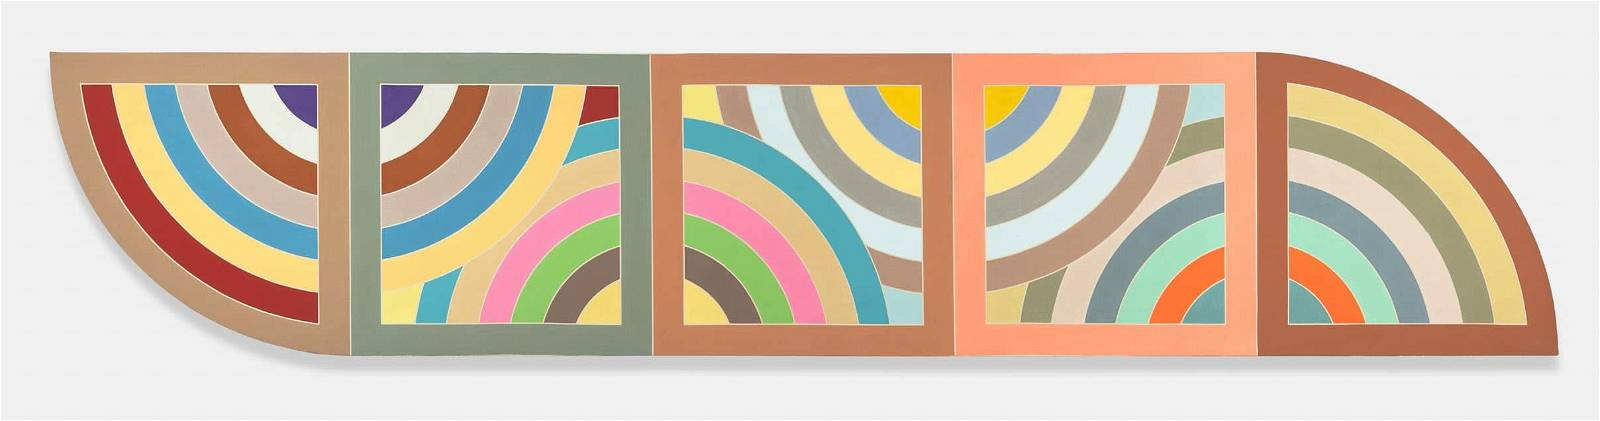 Frank Stella, Damascus Gate, Stretch Variation II, Half Size, 1969, Acrylic on canvas, 60 by 300 inches (152.4 x 762 cm), courtesy of Edward Tyler Nahem